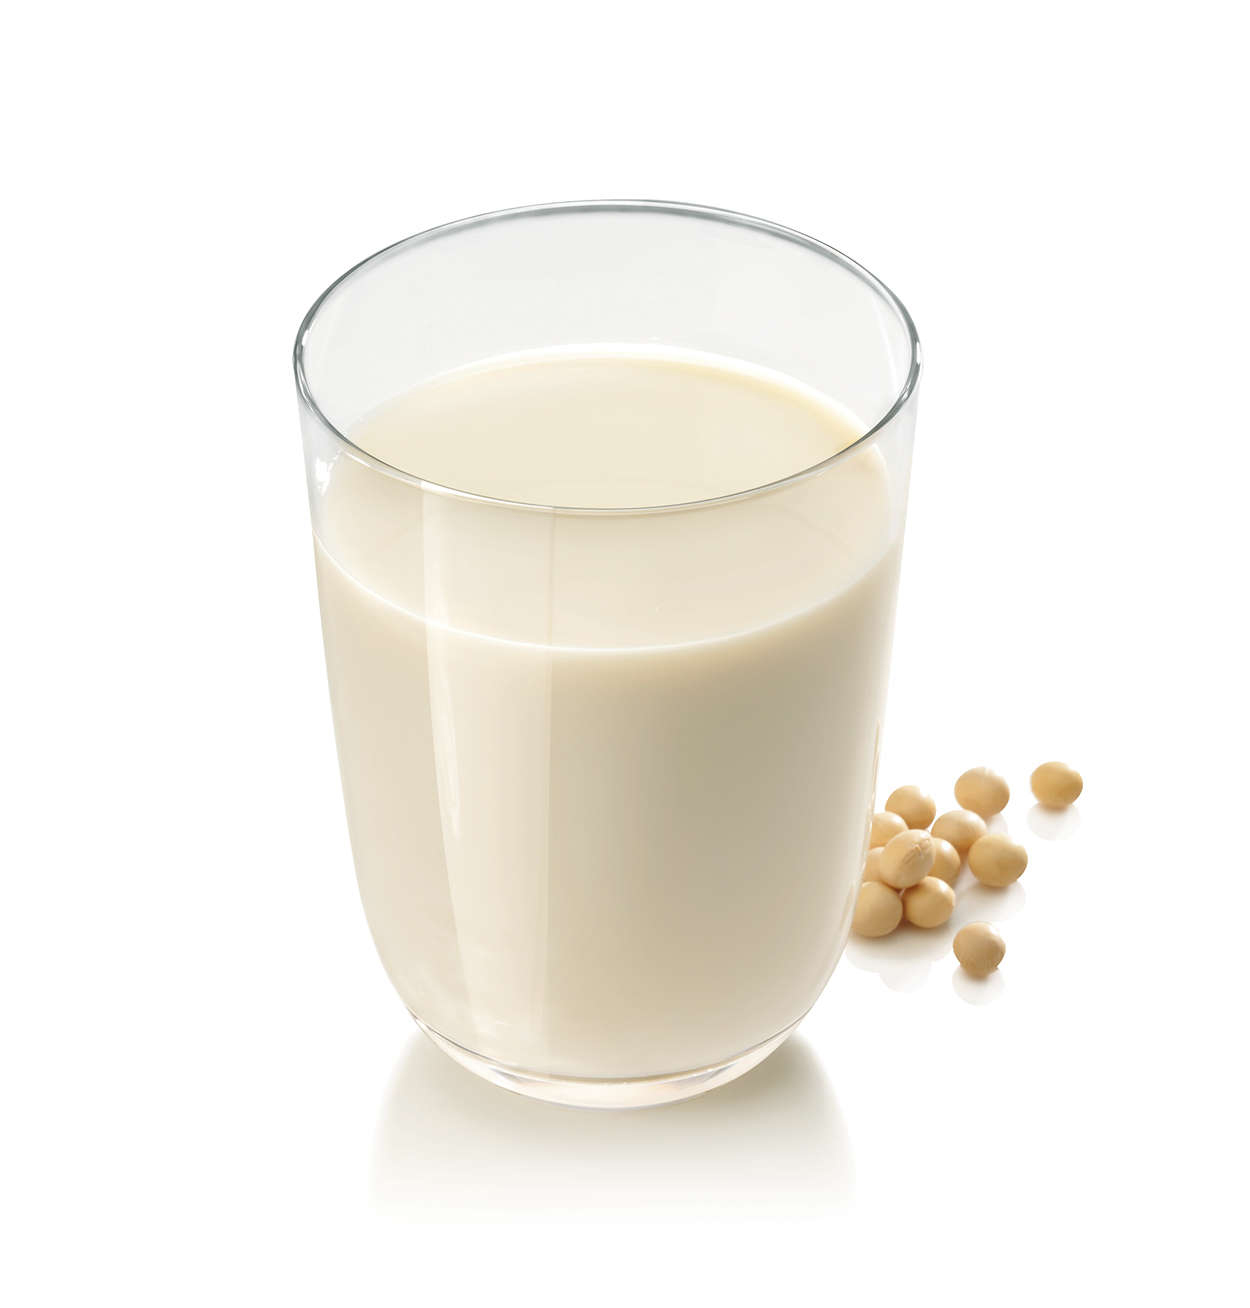 the nutritional value of soy milk Milk skim versus soy milk - side-by-side nutritional comparison of milk skim and soy milk.